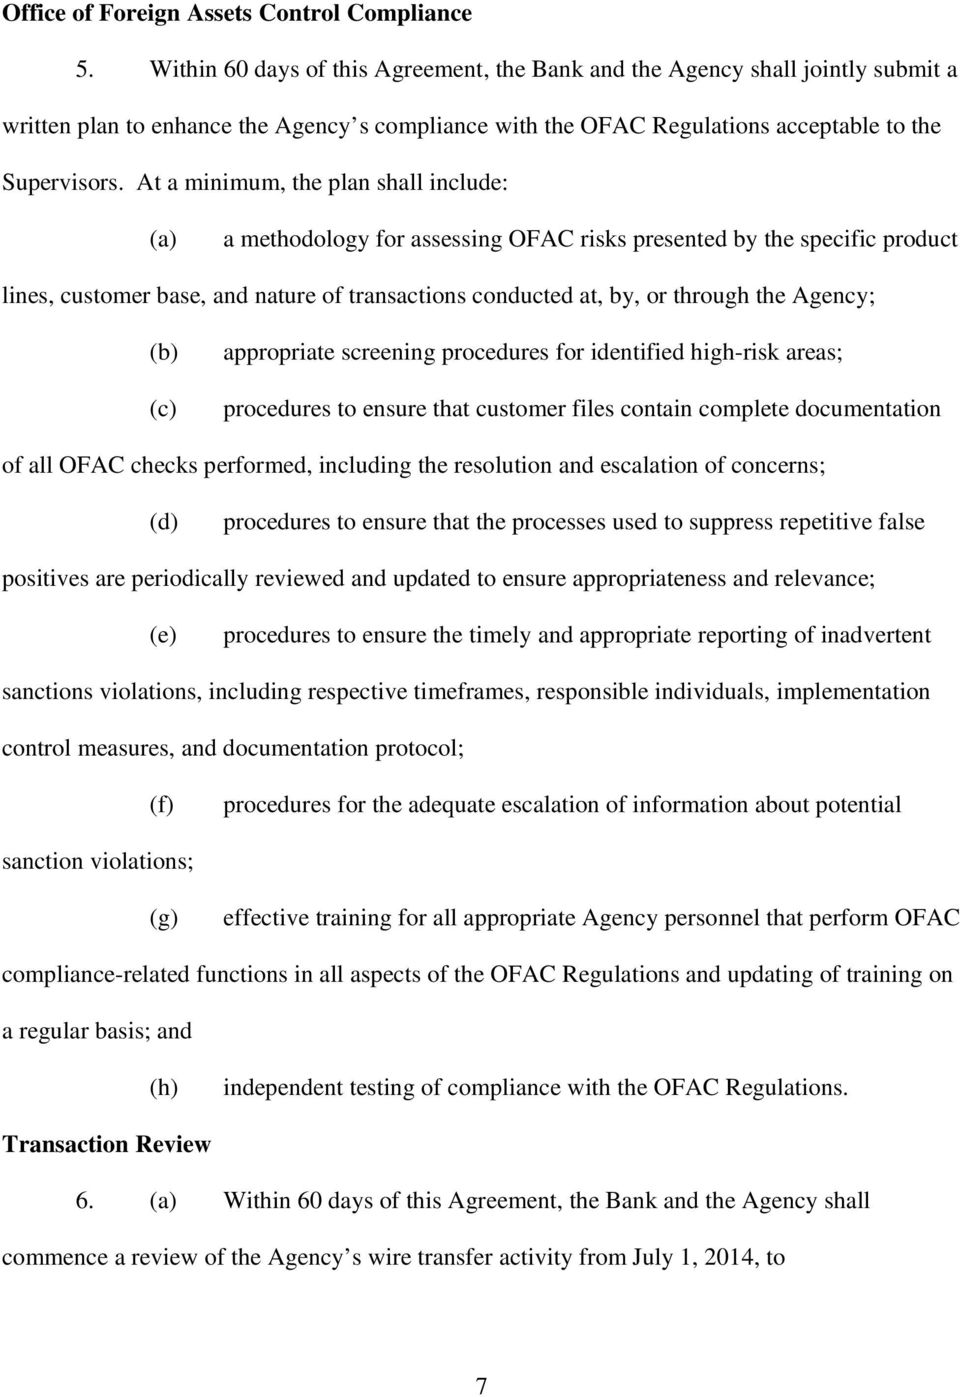 At a minimum, the plan shall include: a methodology for assessing OFAC risks presented by the specific product lines, customer base, and nature of transactions conducted at, by, or through the